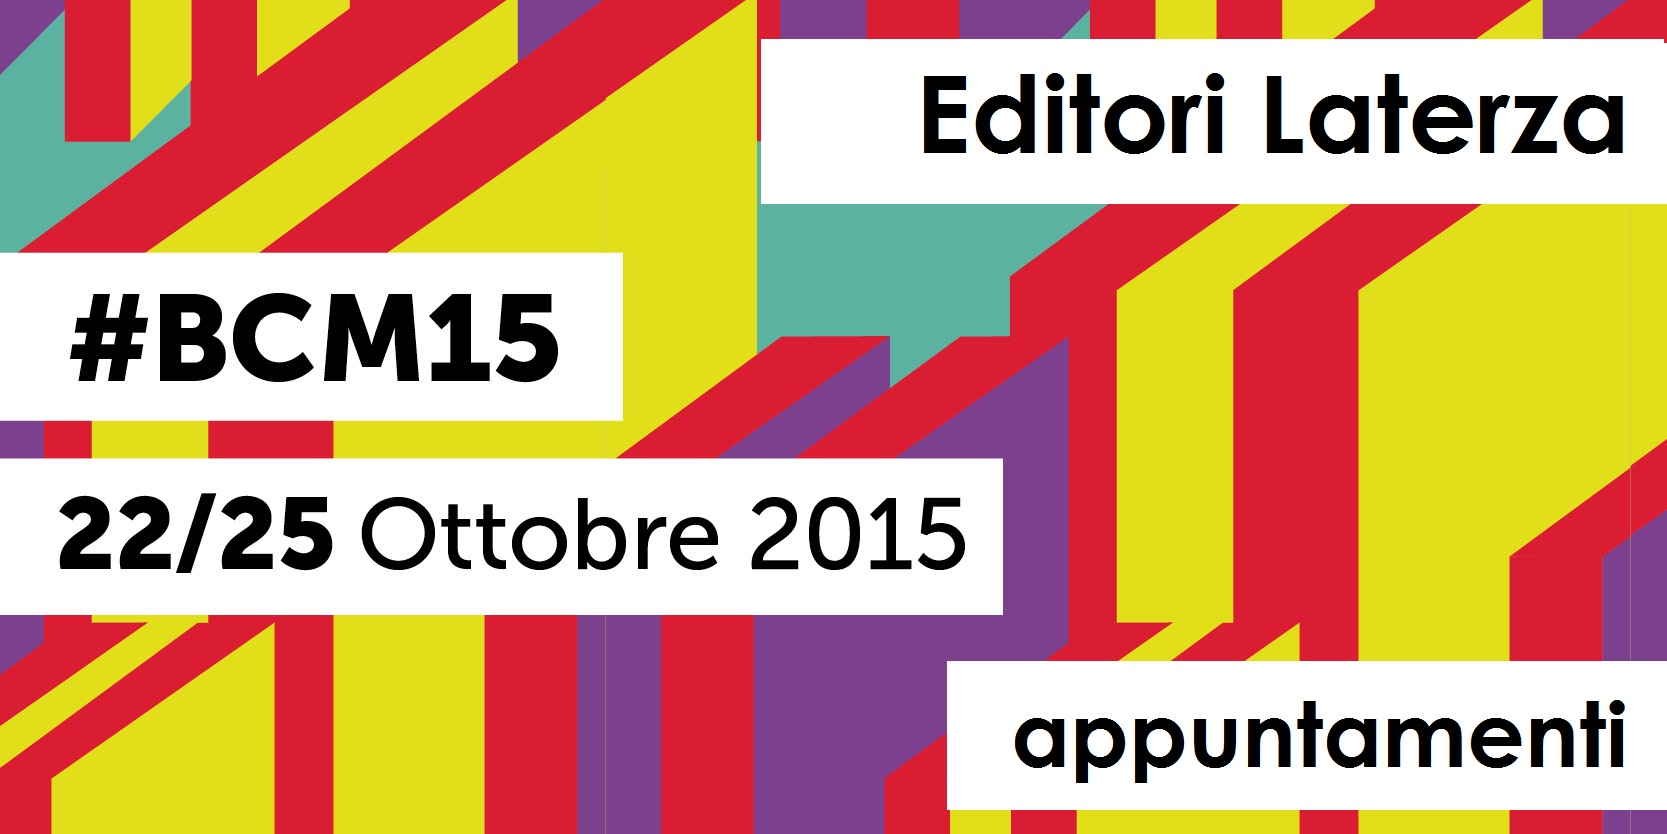 Bookcity 2015 - Appuntamenti Laterza